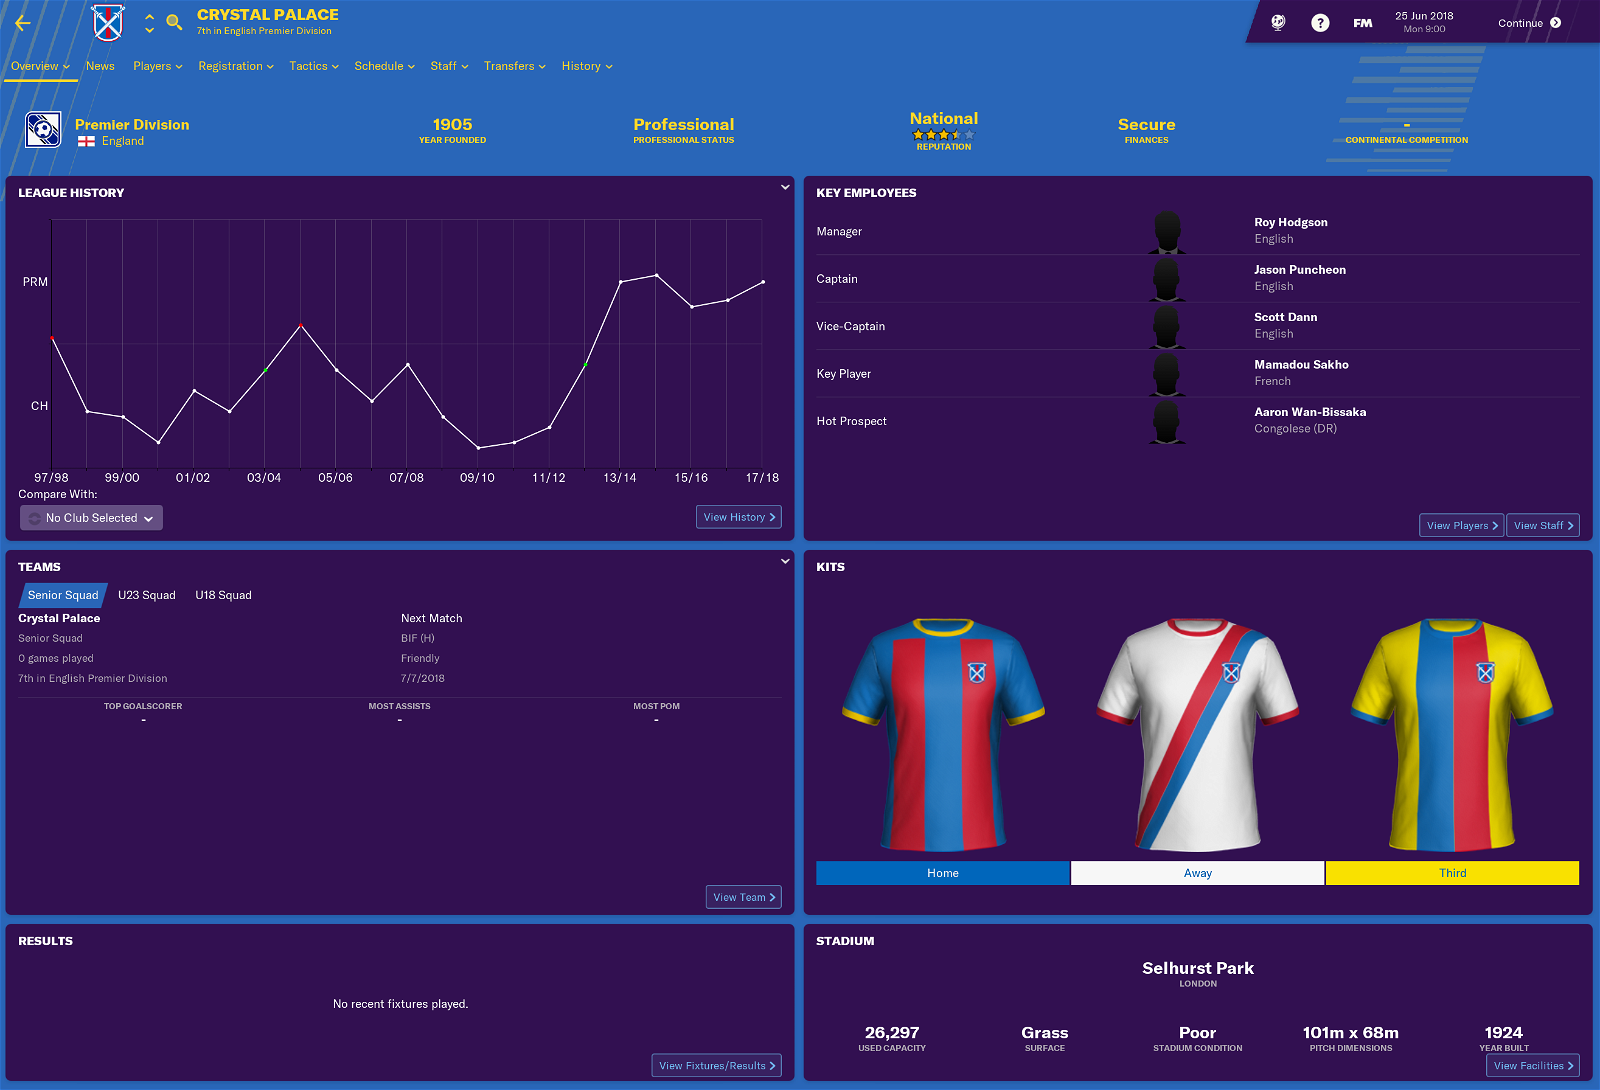 FM19 TEAM GUIDE CRYSTAL PALACE